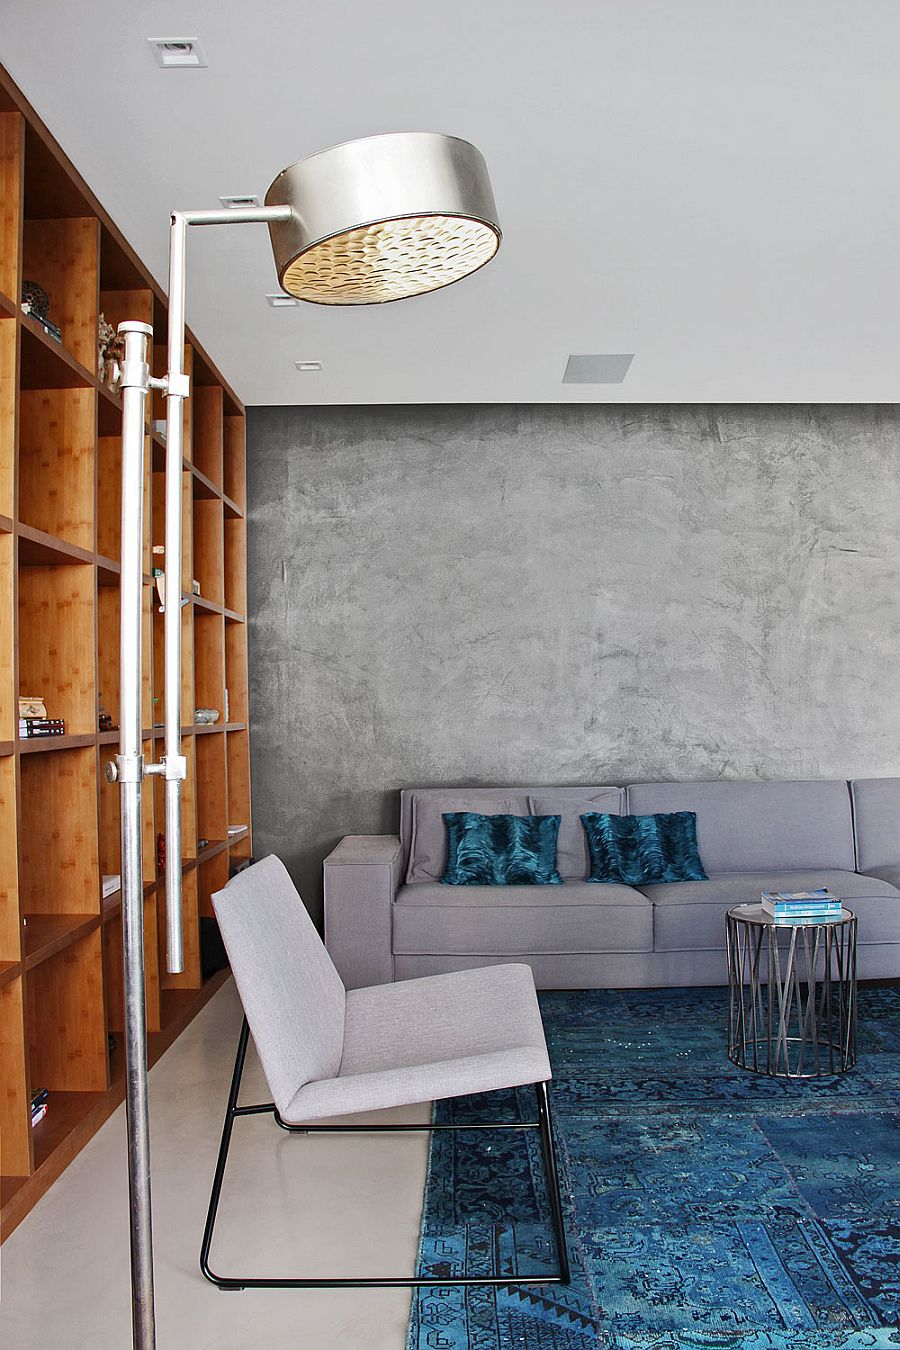 Contemporary couch in gray blends into the cement wall backdrop